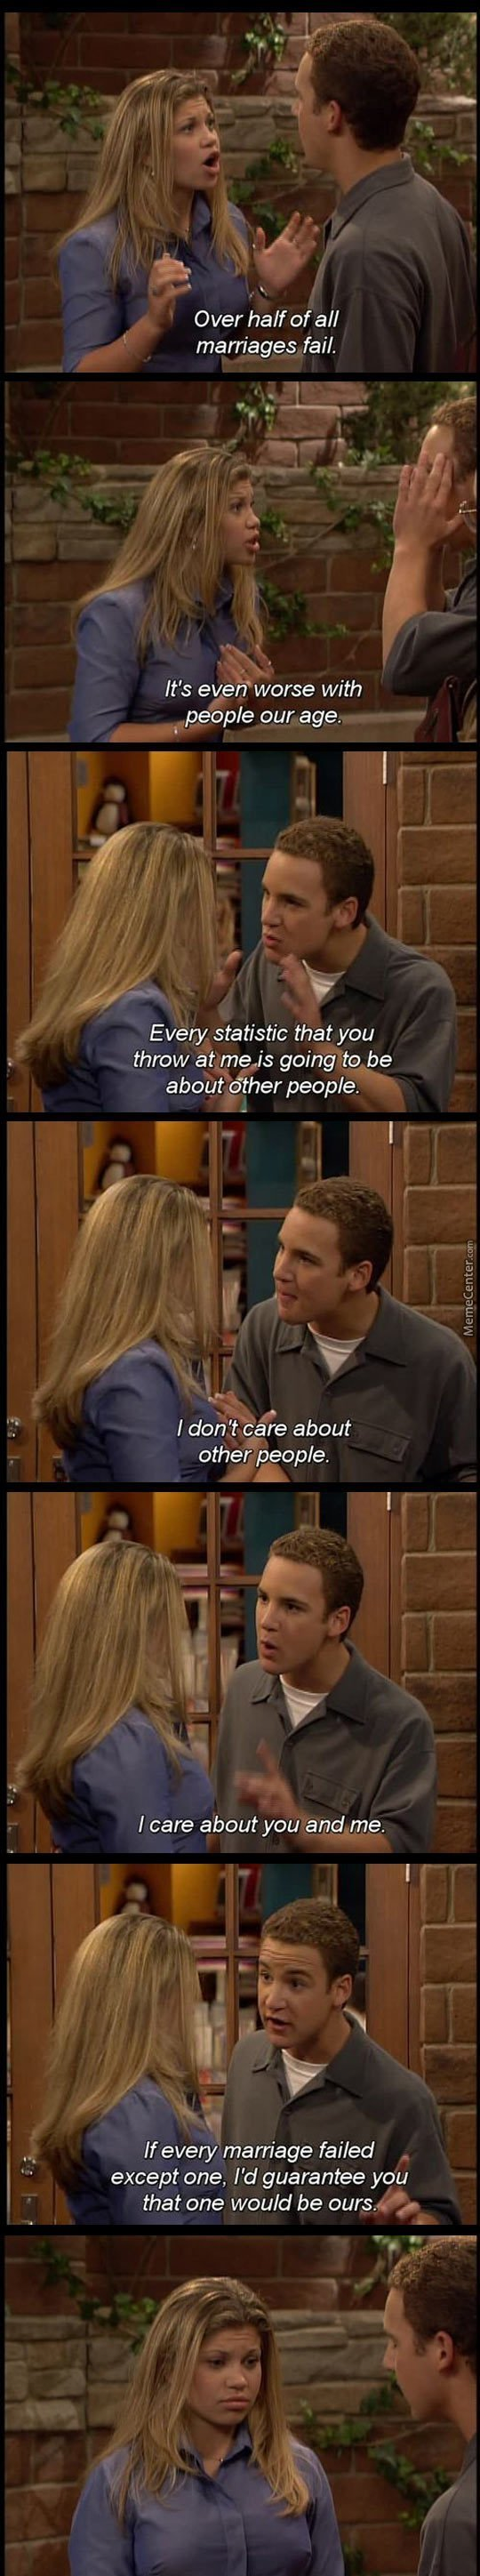 Like A Boss( Scene From Boy Meets World)